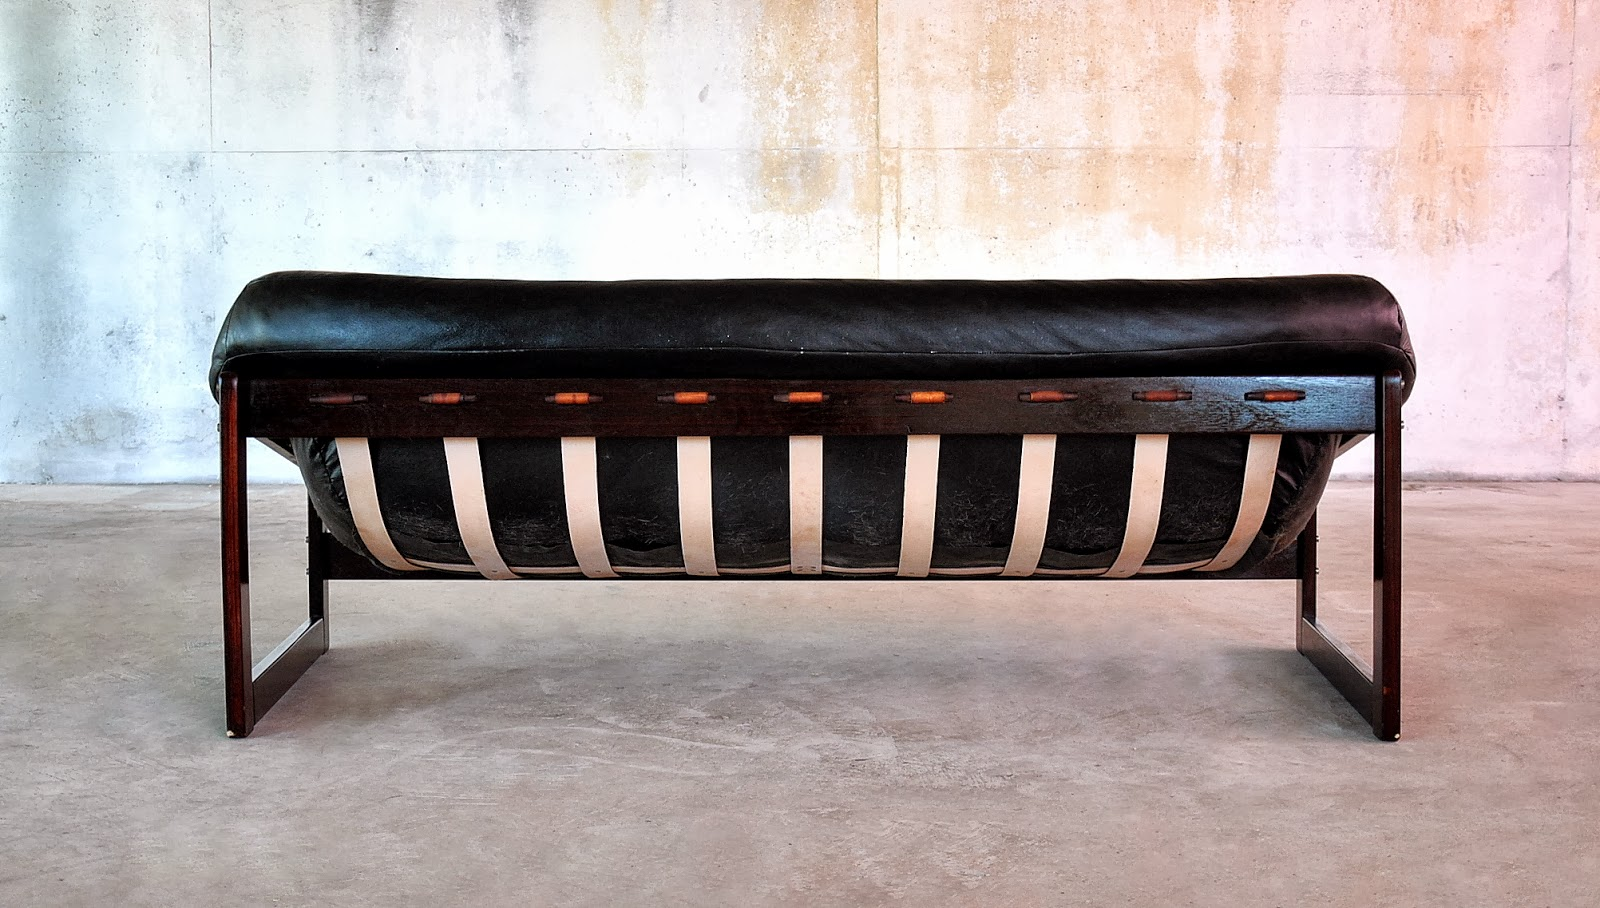 Percival Lafer Sofa Modern Black Leather With Chrome Legs Select